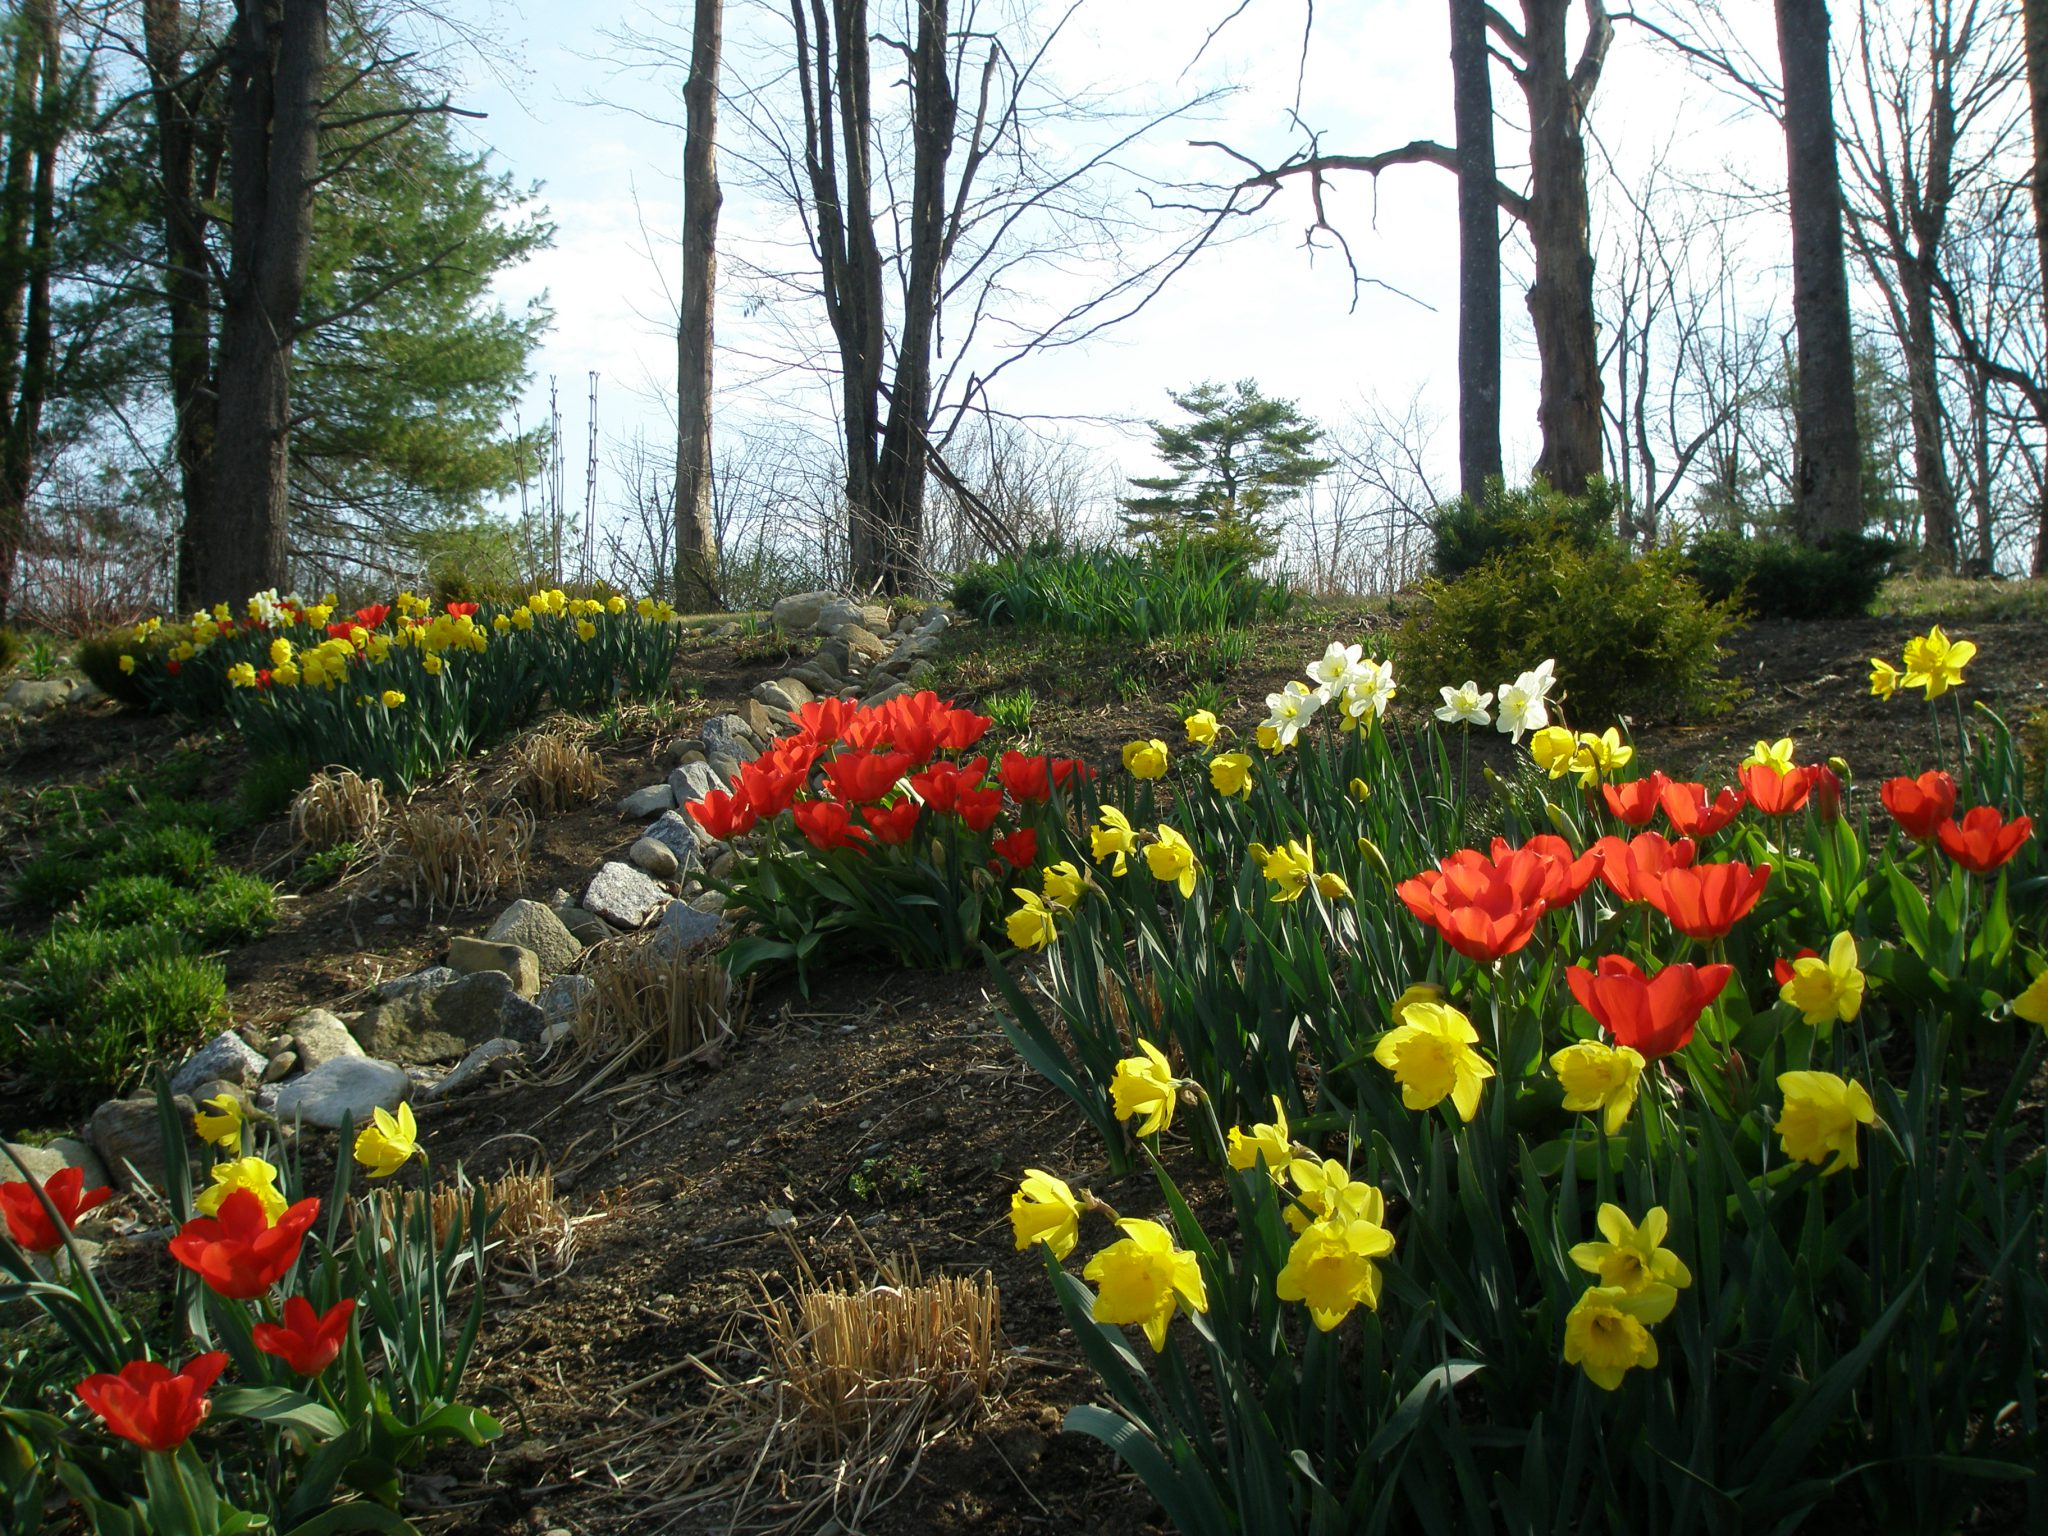 The Harmony of Yellow Daffodils and Red Tulips